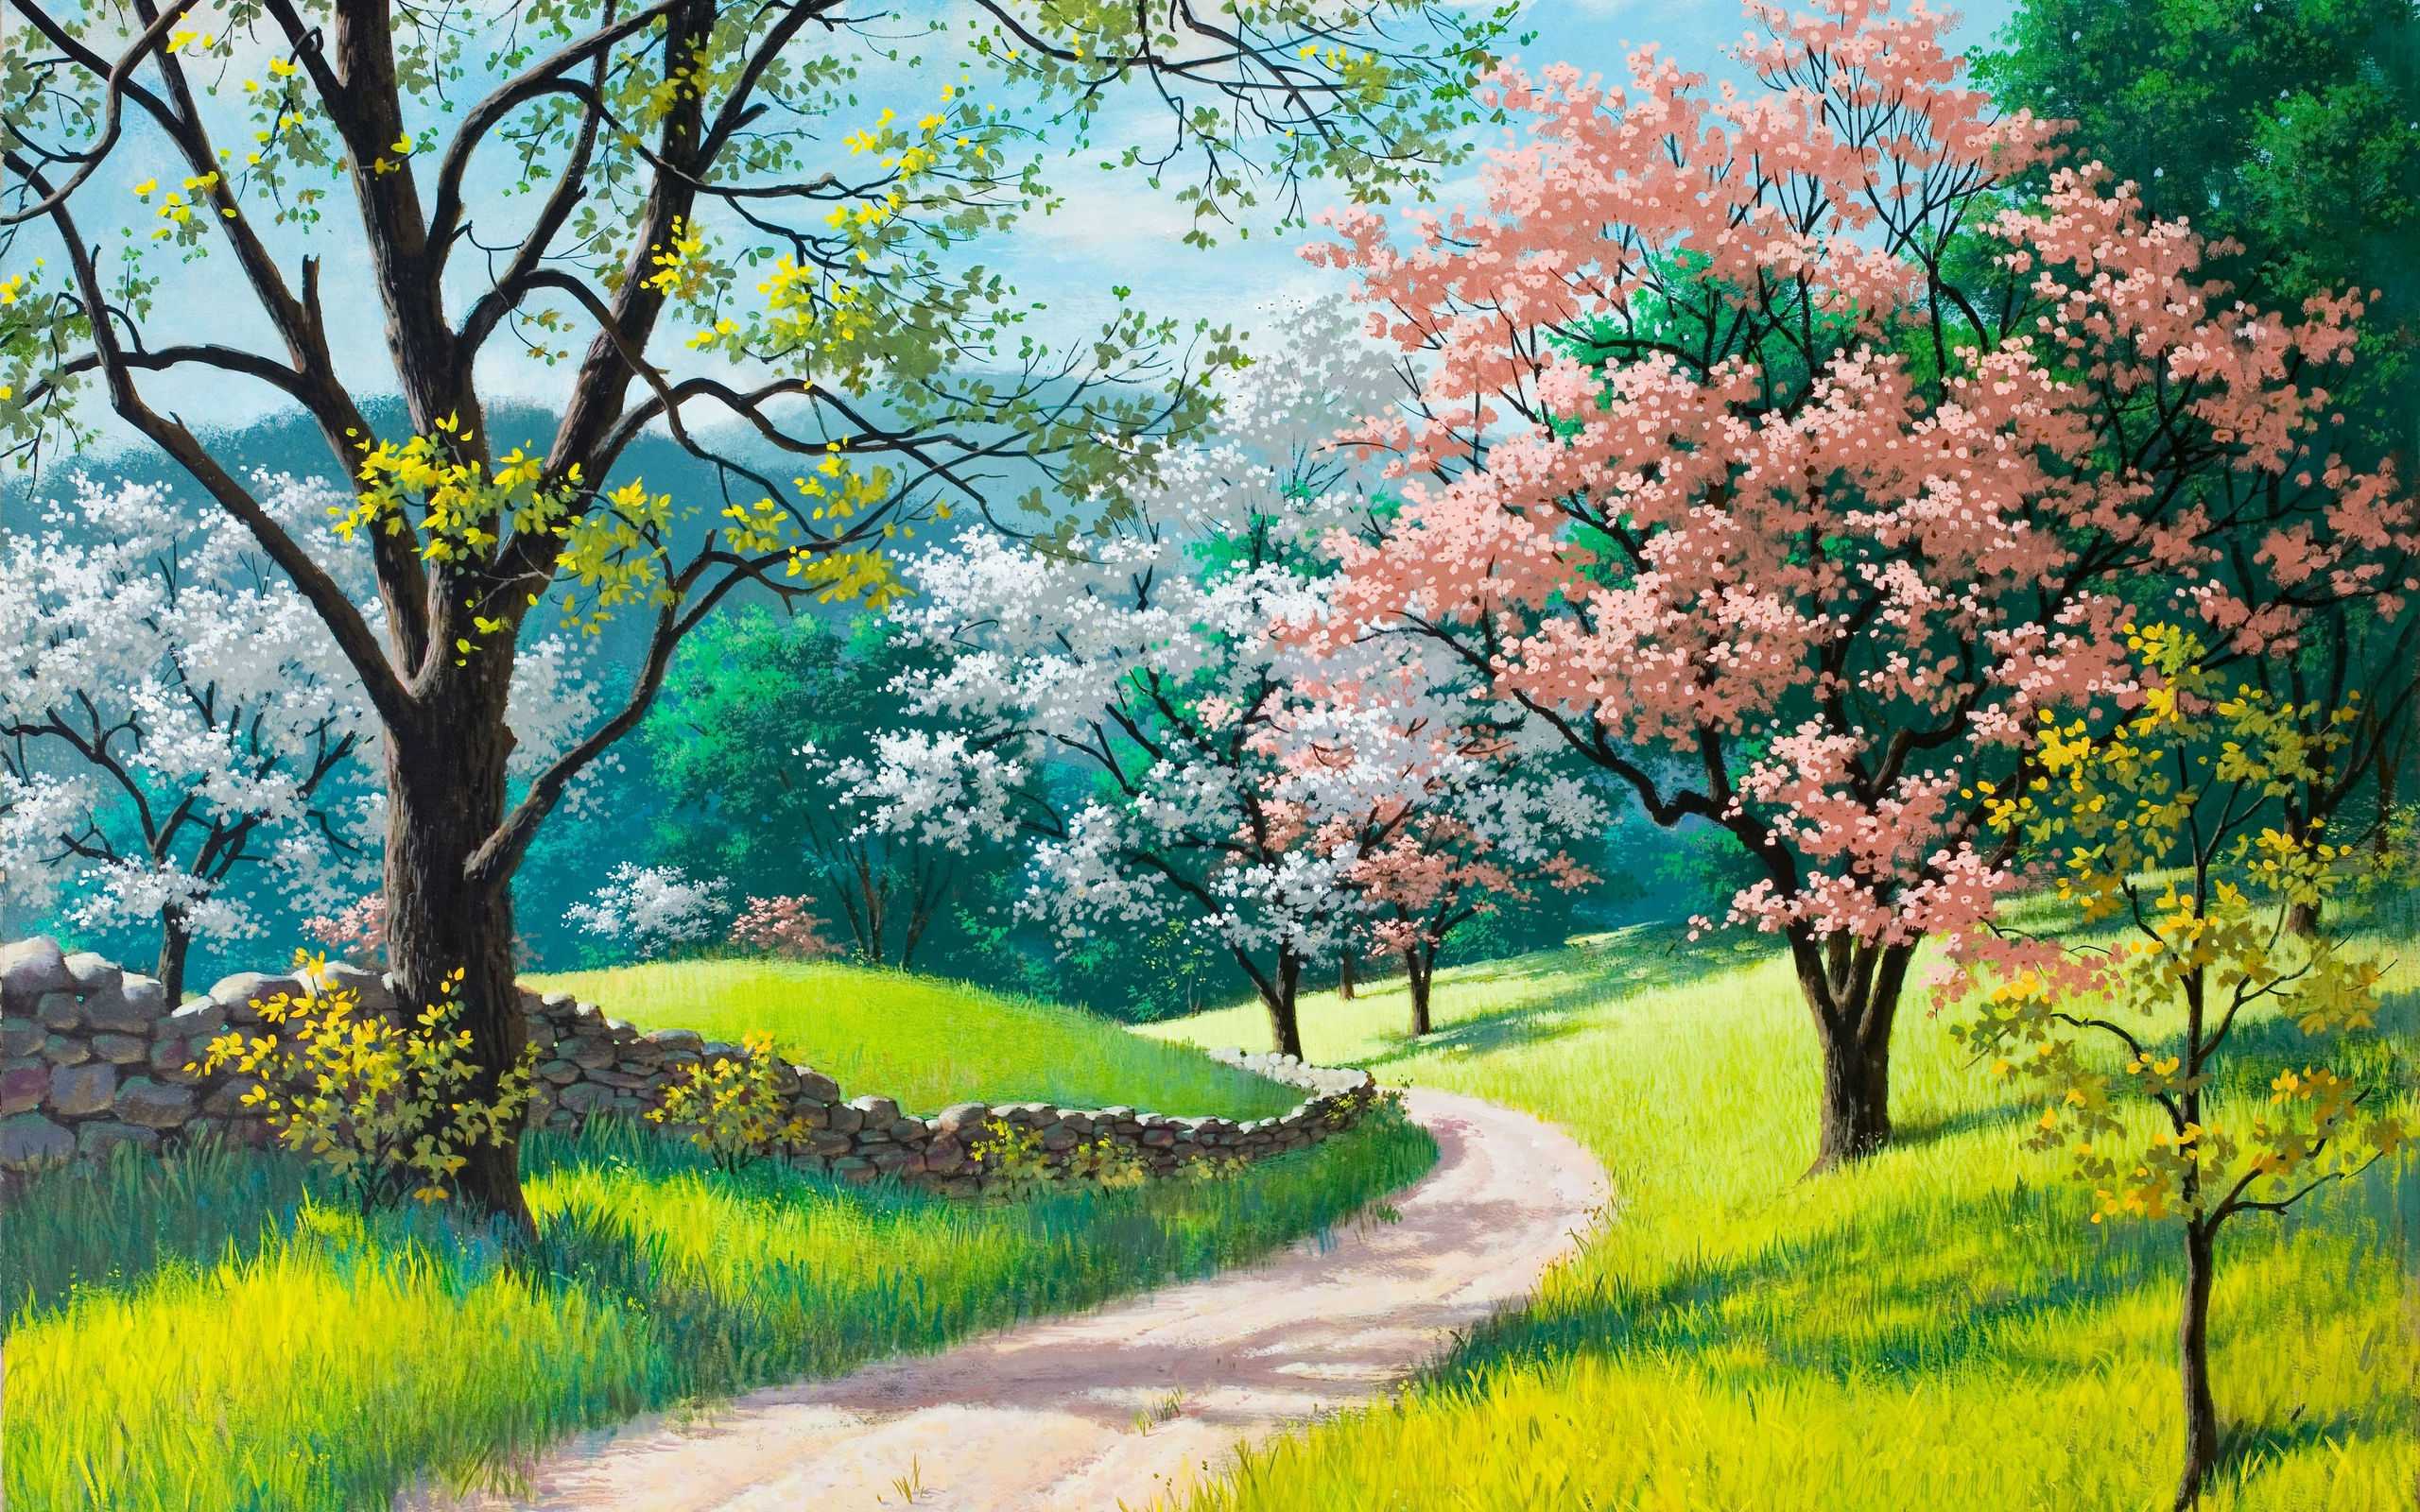 Spring blossoms painting 2560 x 1600 download close